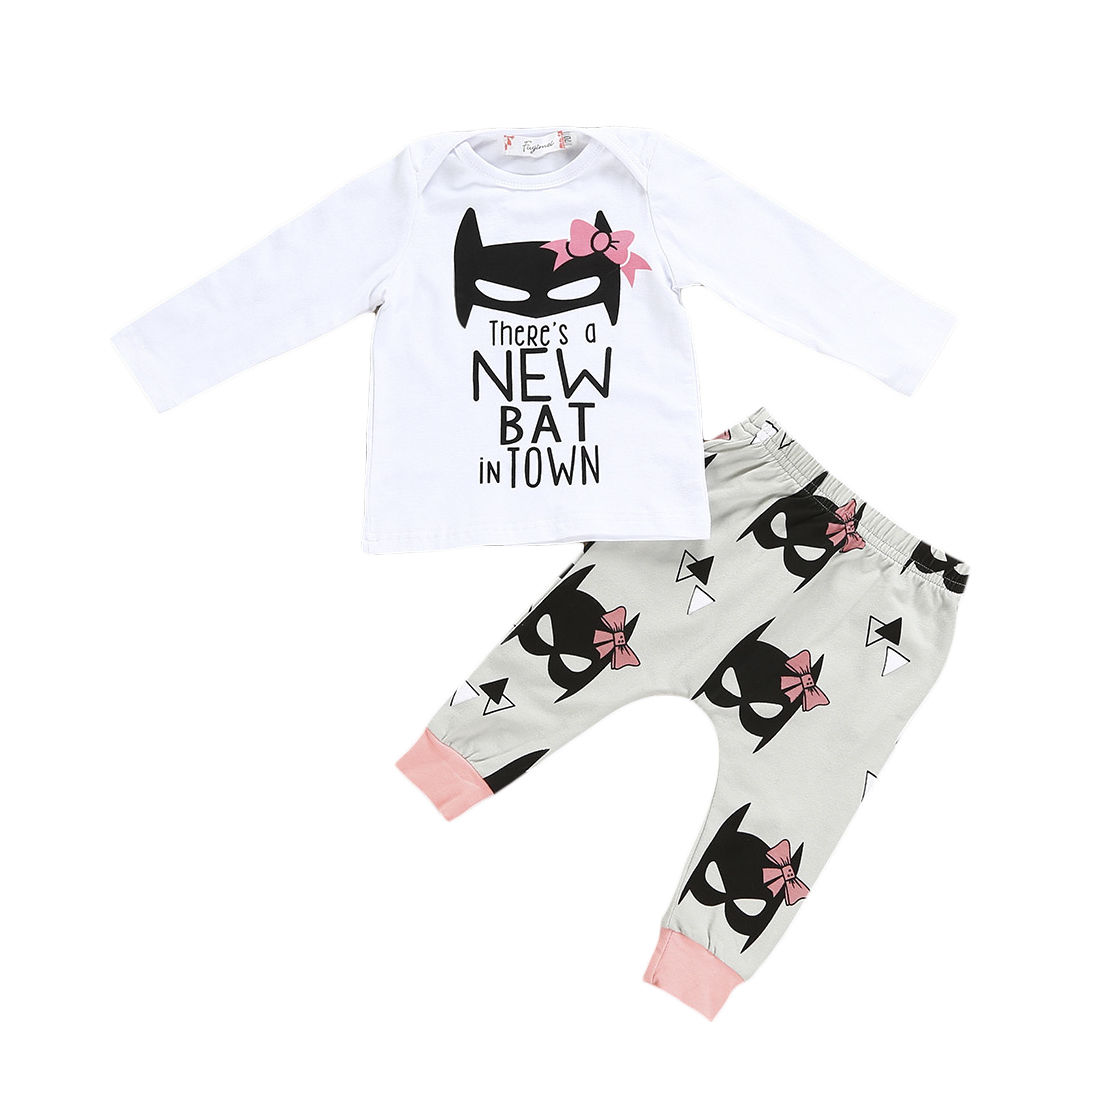 2017 Newborn Baby Girls Bat Clothing Set Infant Babies Girl Full Sleeve T shirt Tops +Long Pants Outfit Set 0-24M Clothes infant tops pants love pattern headband baby girl outfit set clothing 3pcs kid children baby girls clothes long sleeve